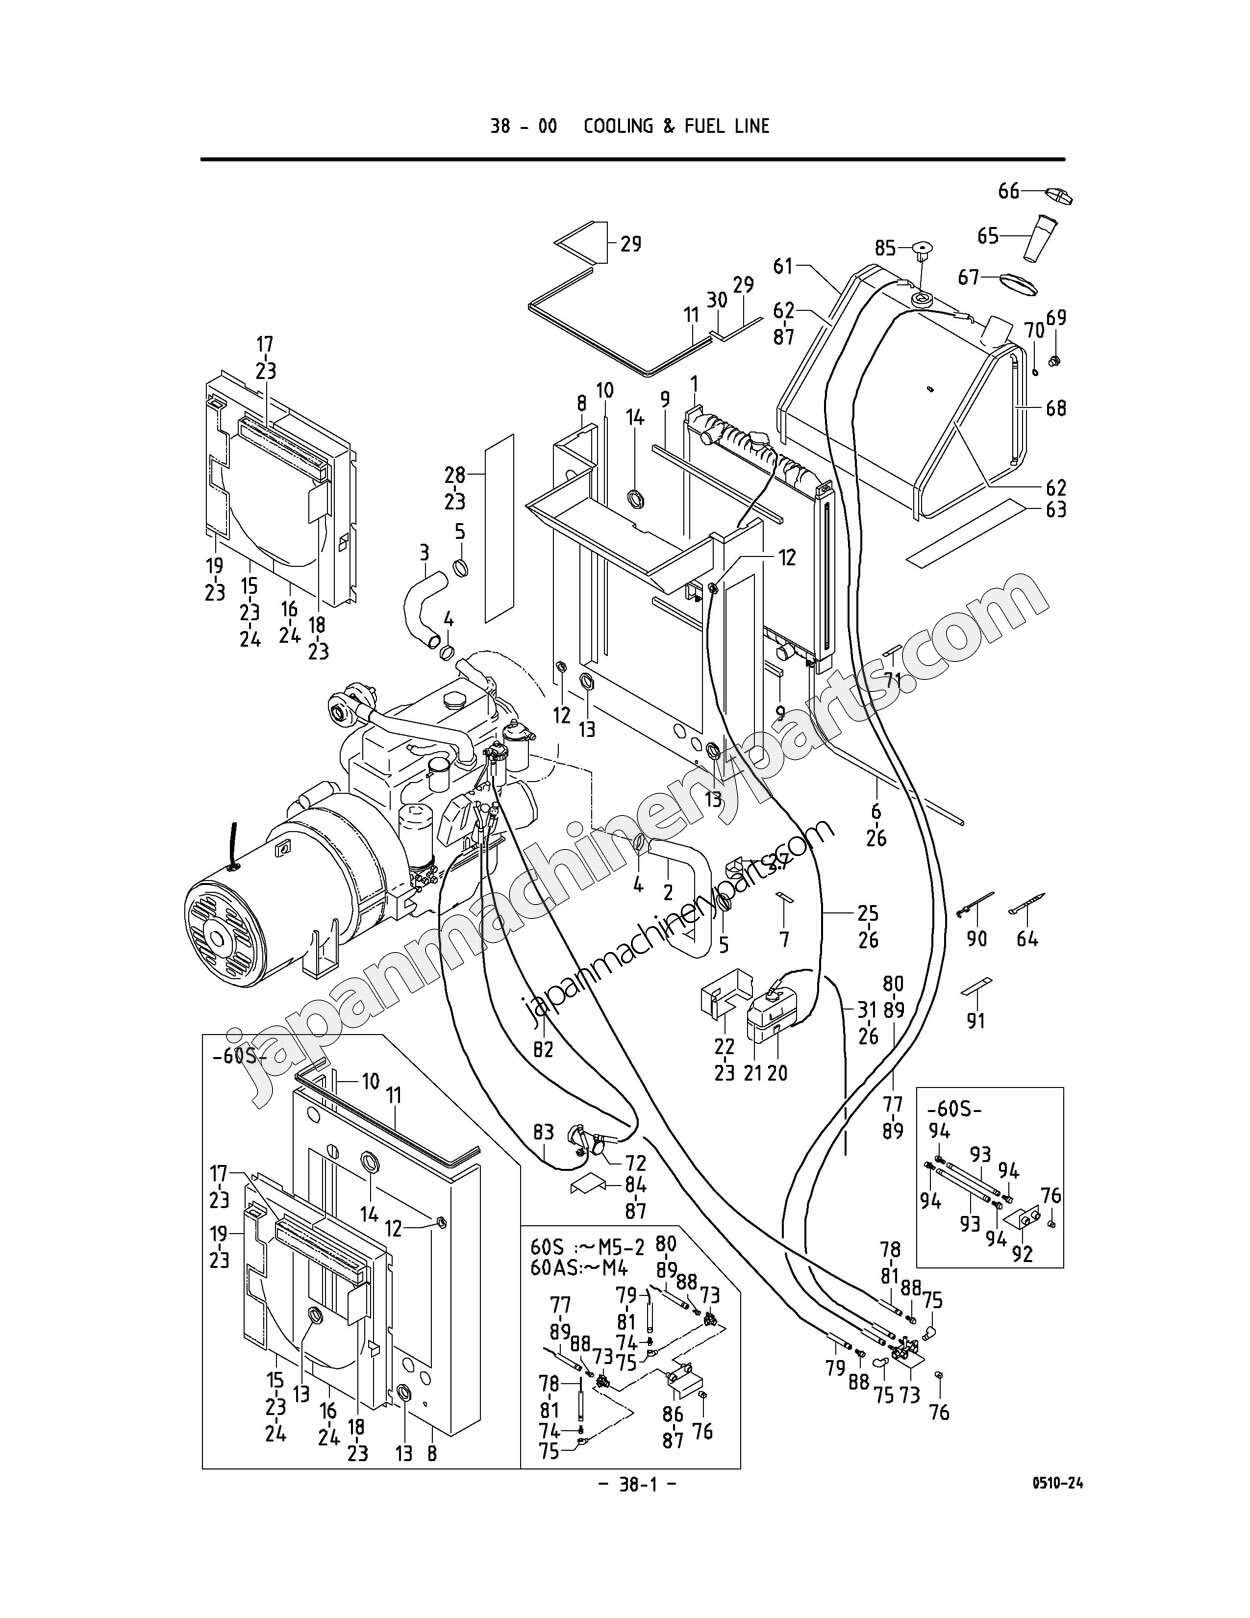 Dt466 Engine Sensor Locations Diagram Oil Pump Parts For Airman A Com Pressure Location 1250x1618